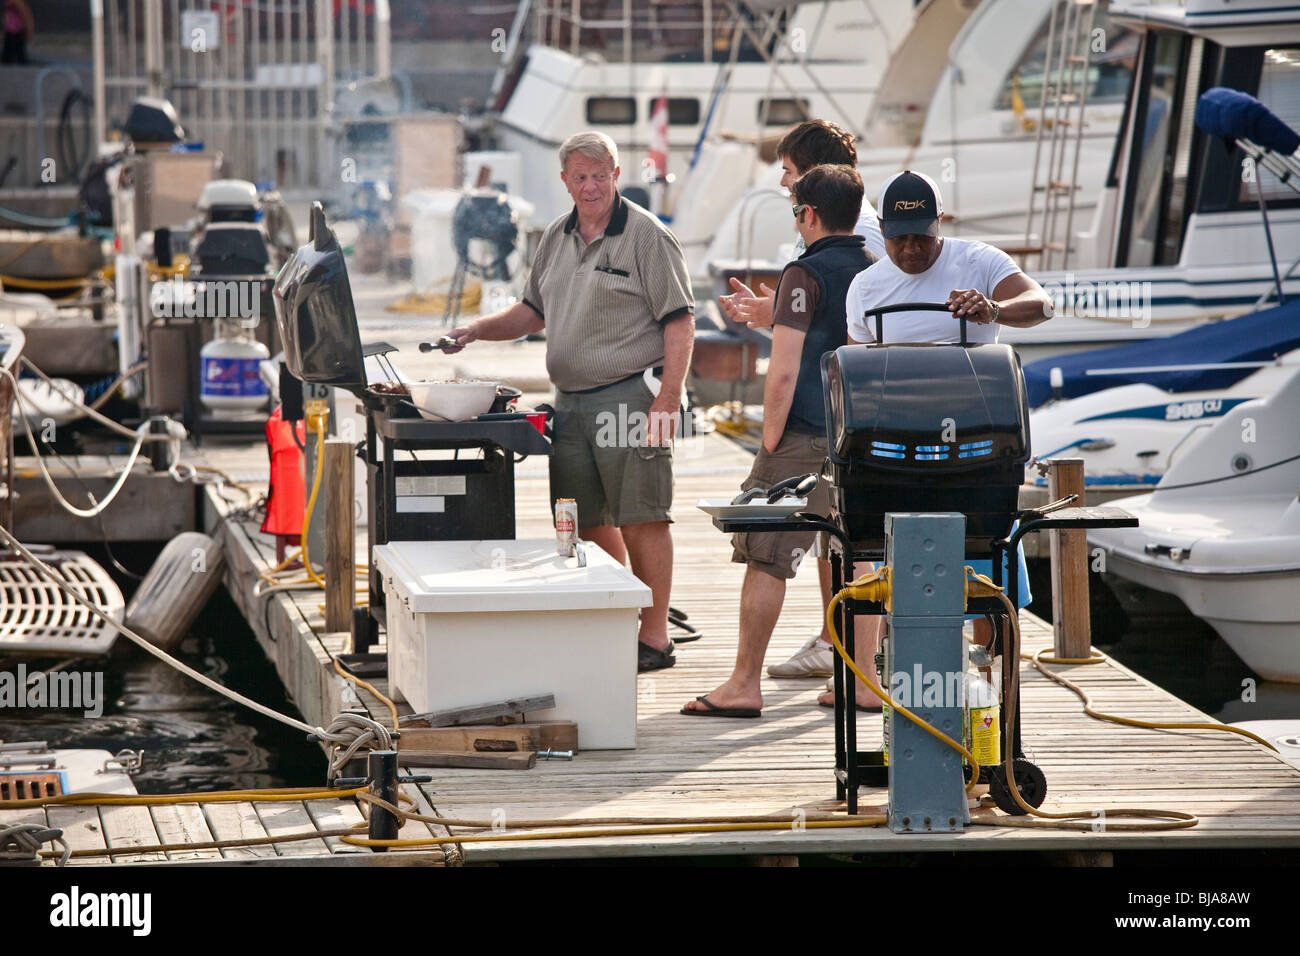 Men of mixed ages and races barbecuing at the Toronto waterfront - Stock Image